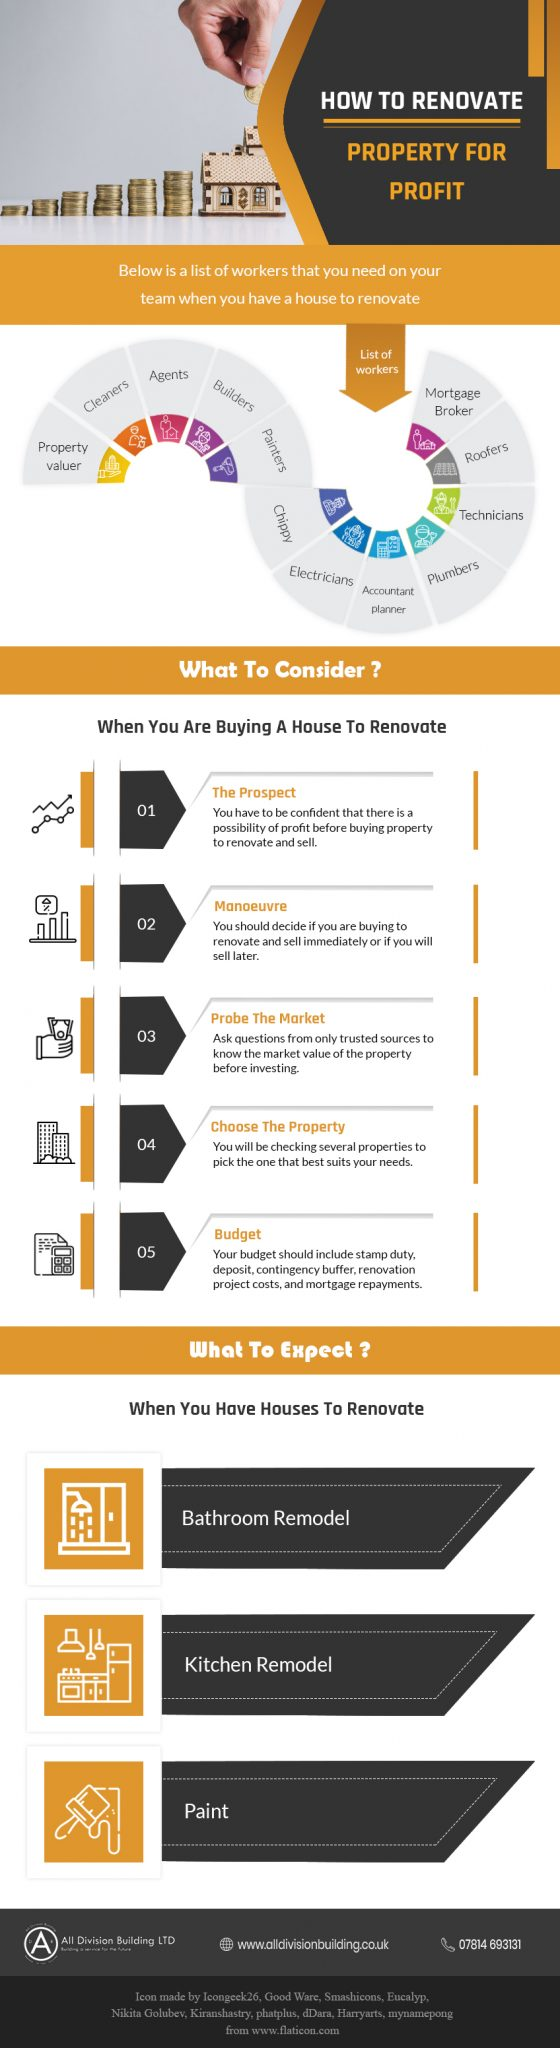 How to renovate property for Profit infographic